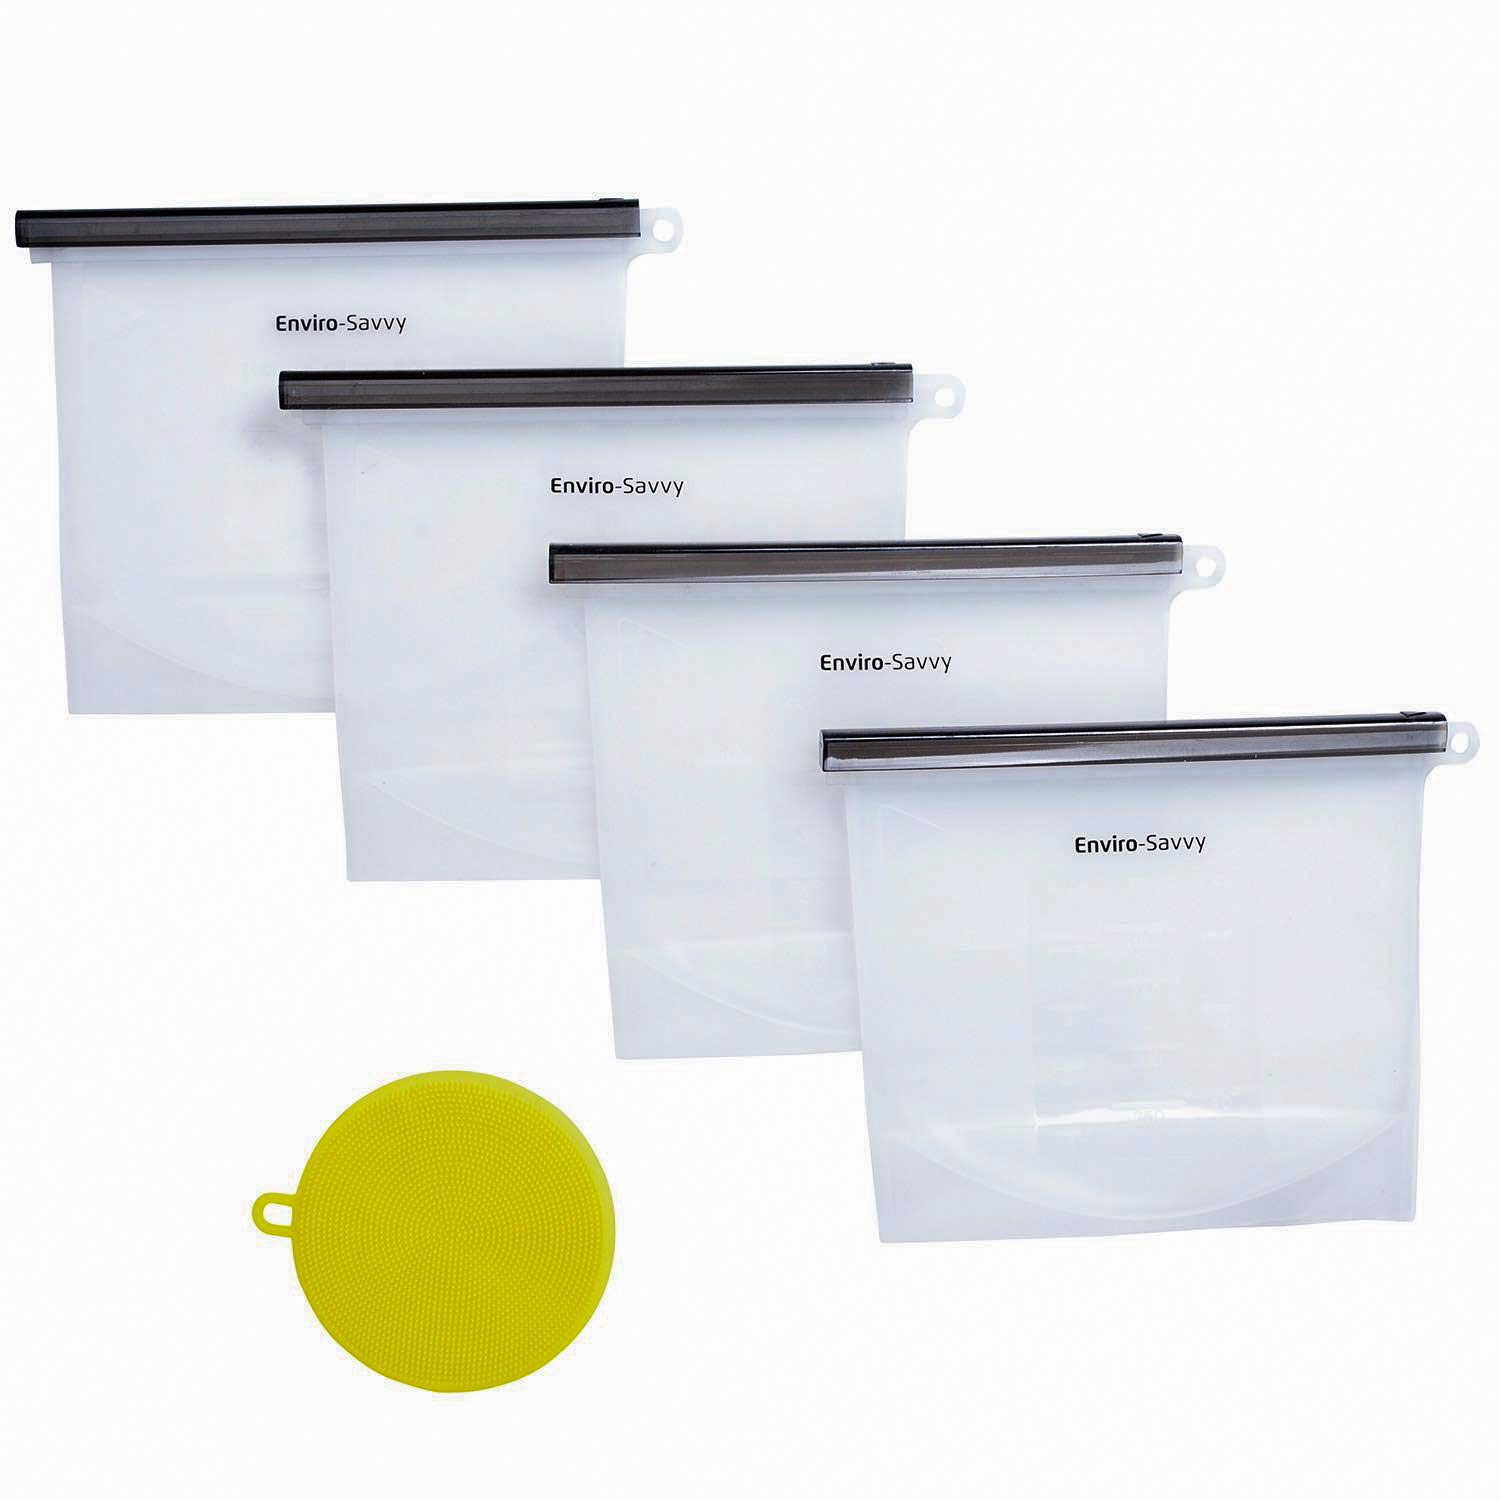 Enviro-Savvy Silicone Storage Bags Reusable with Easy Sealing Bar - Microwavable- Leakproof - Boil Safe - Freezer Safe - Dishwasher Safe - 4 Clear Quart Size Food Storage Bags and 1 Scrubbing Pad